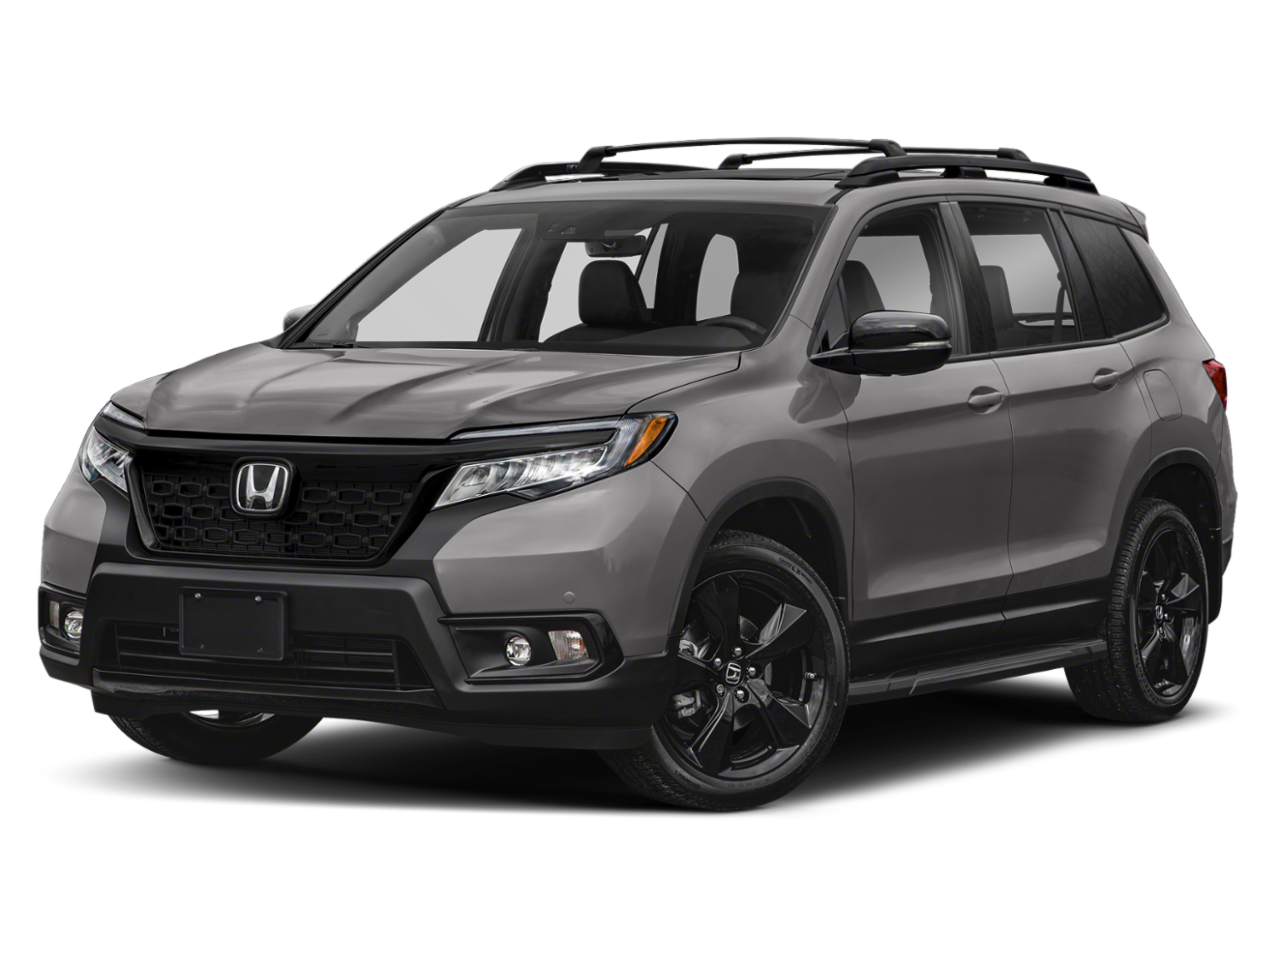 Honda 2020 Passport Elite